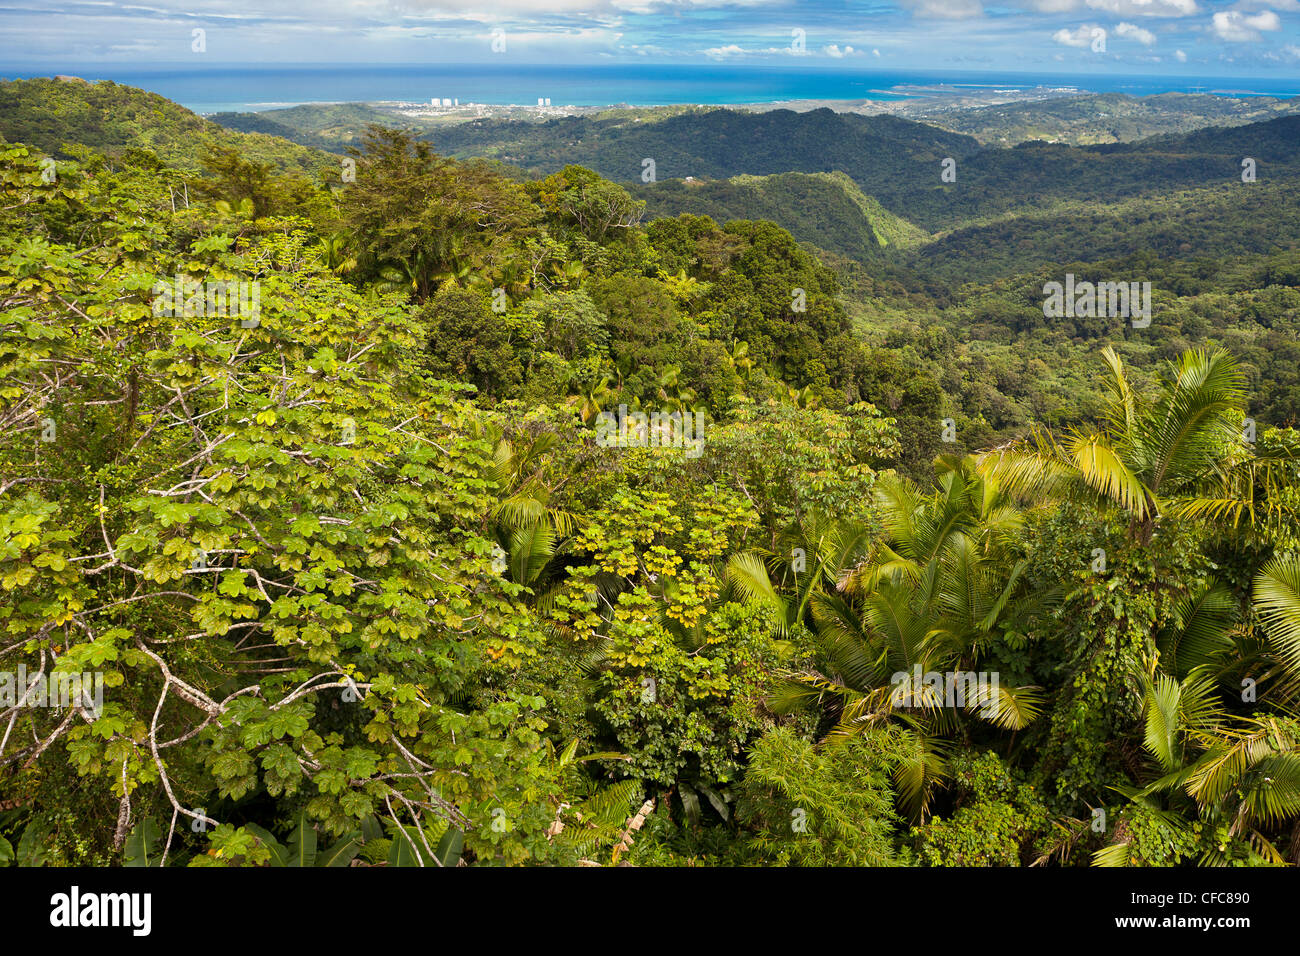 EL YUNQUE NATIONAL FOREST, PUERTO RICO - Rain forest jungle canopy landscape and coast near Luquillo Stock Photo